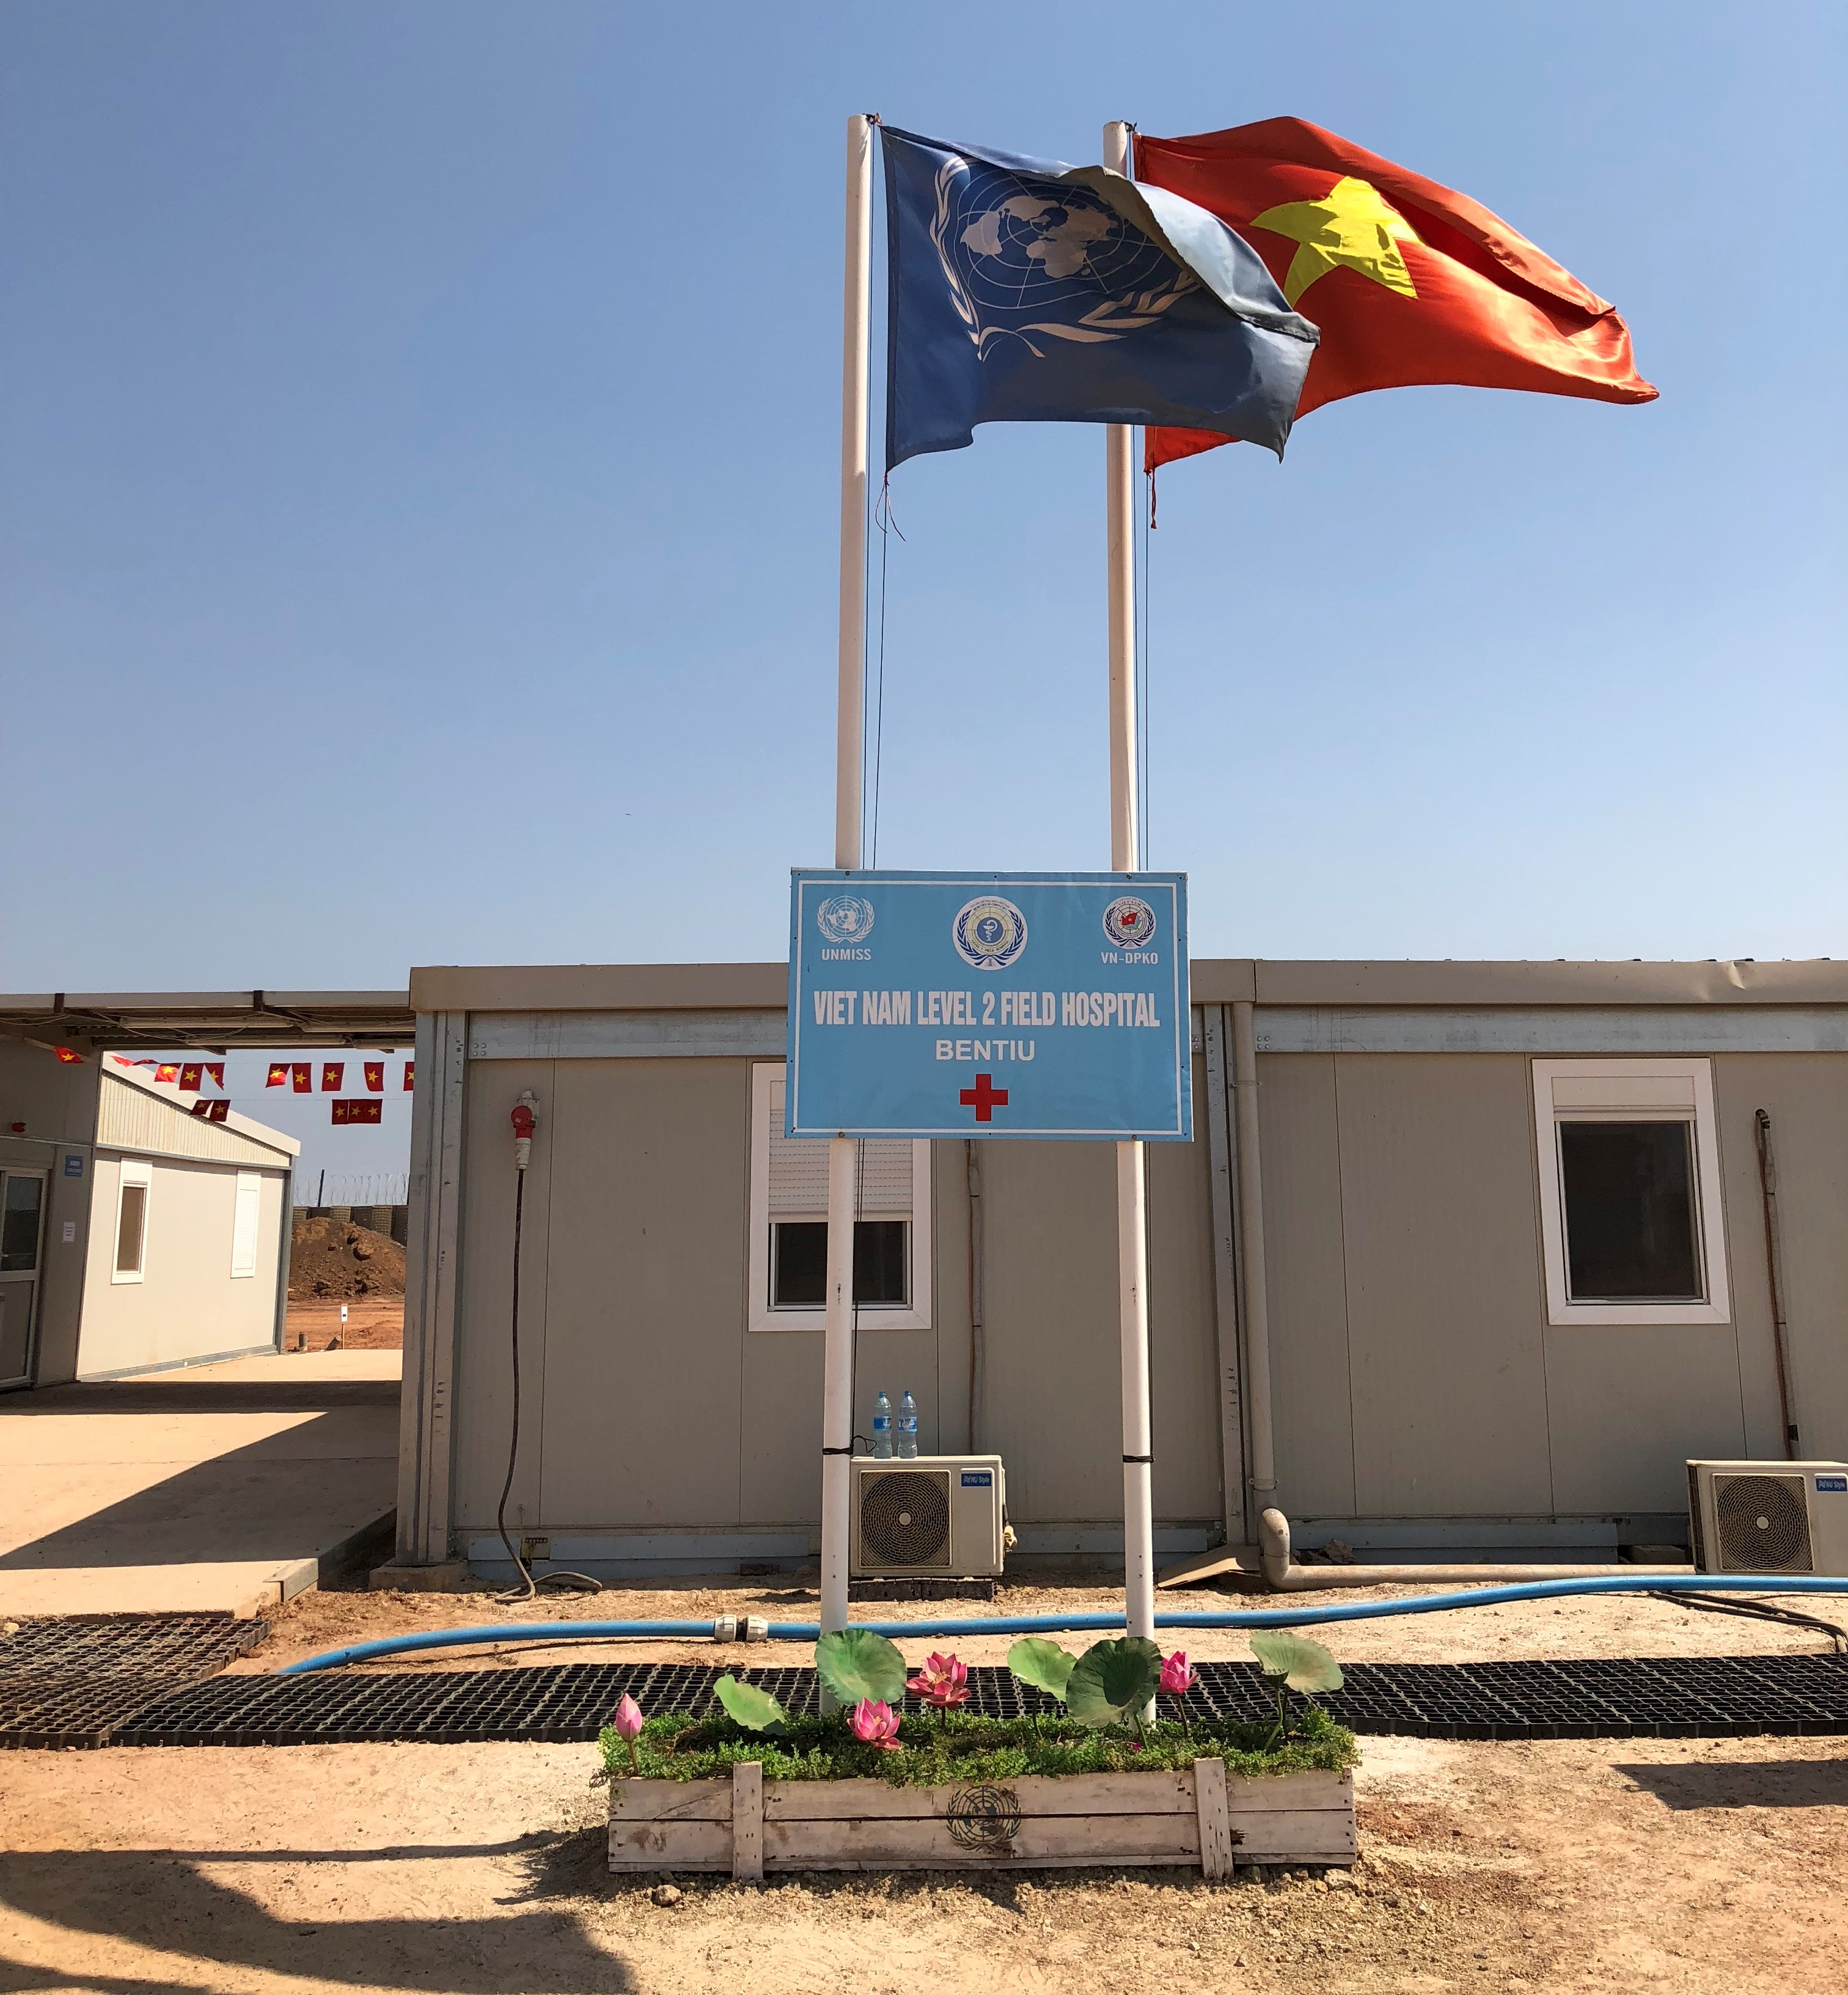 Vietnamese and UN flags flutter in the yard of the Vietnamese level 2 field hospital in South Sudan, November 2019. Photo: Hong Van / Tuoi Tre News